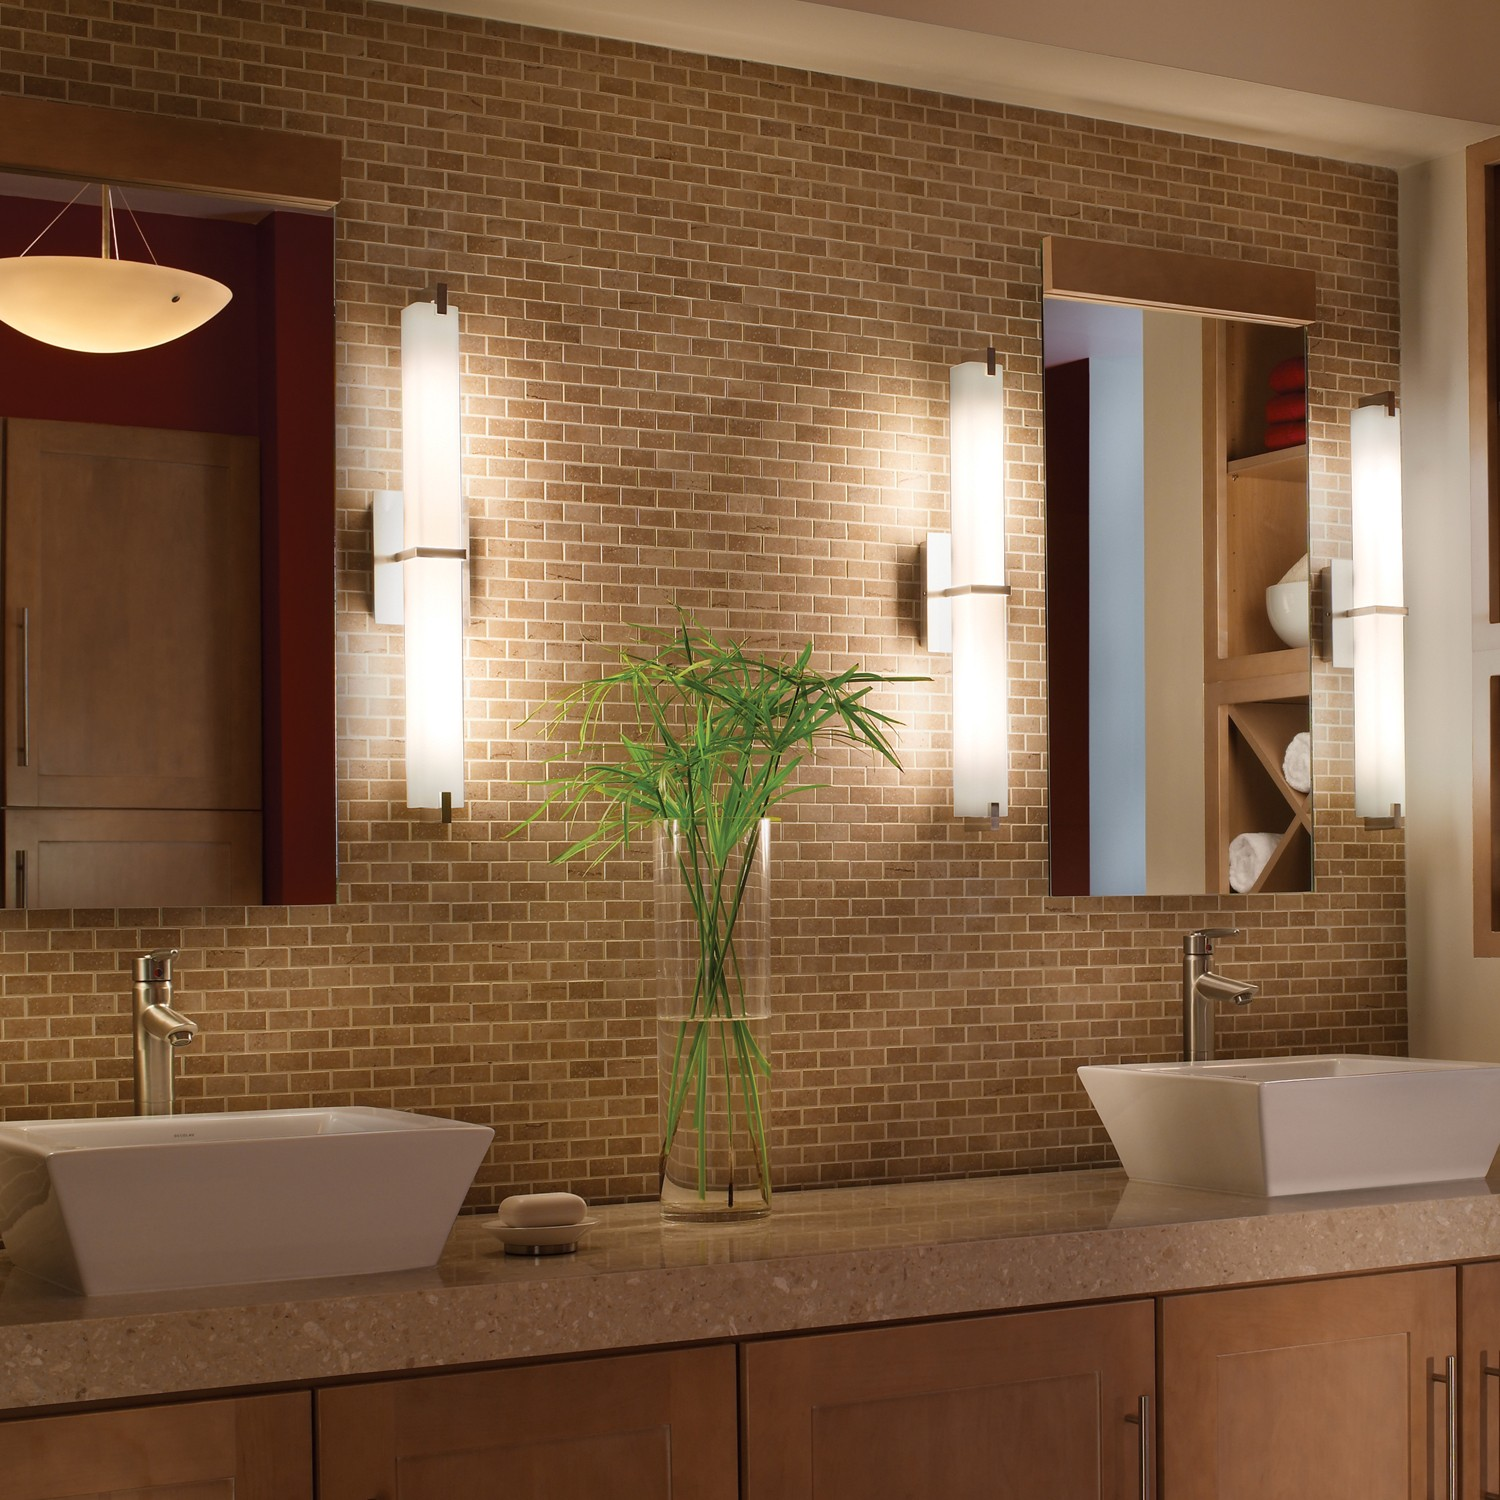 How to Light a Bathroom Lighting Ideas & Tips